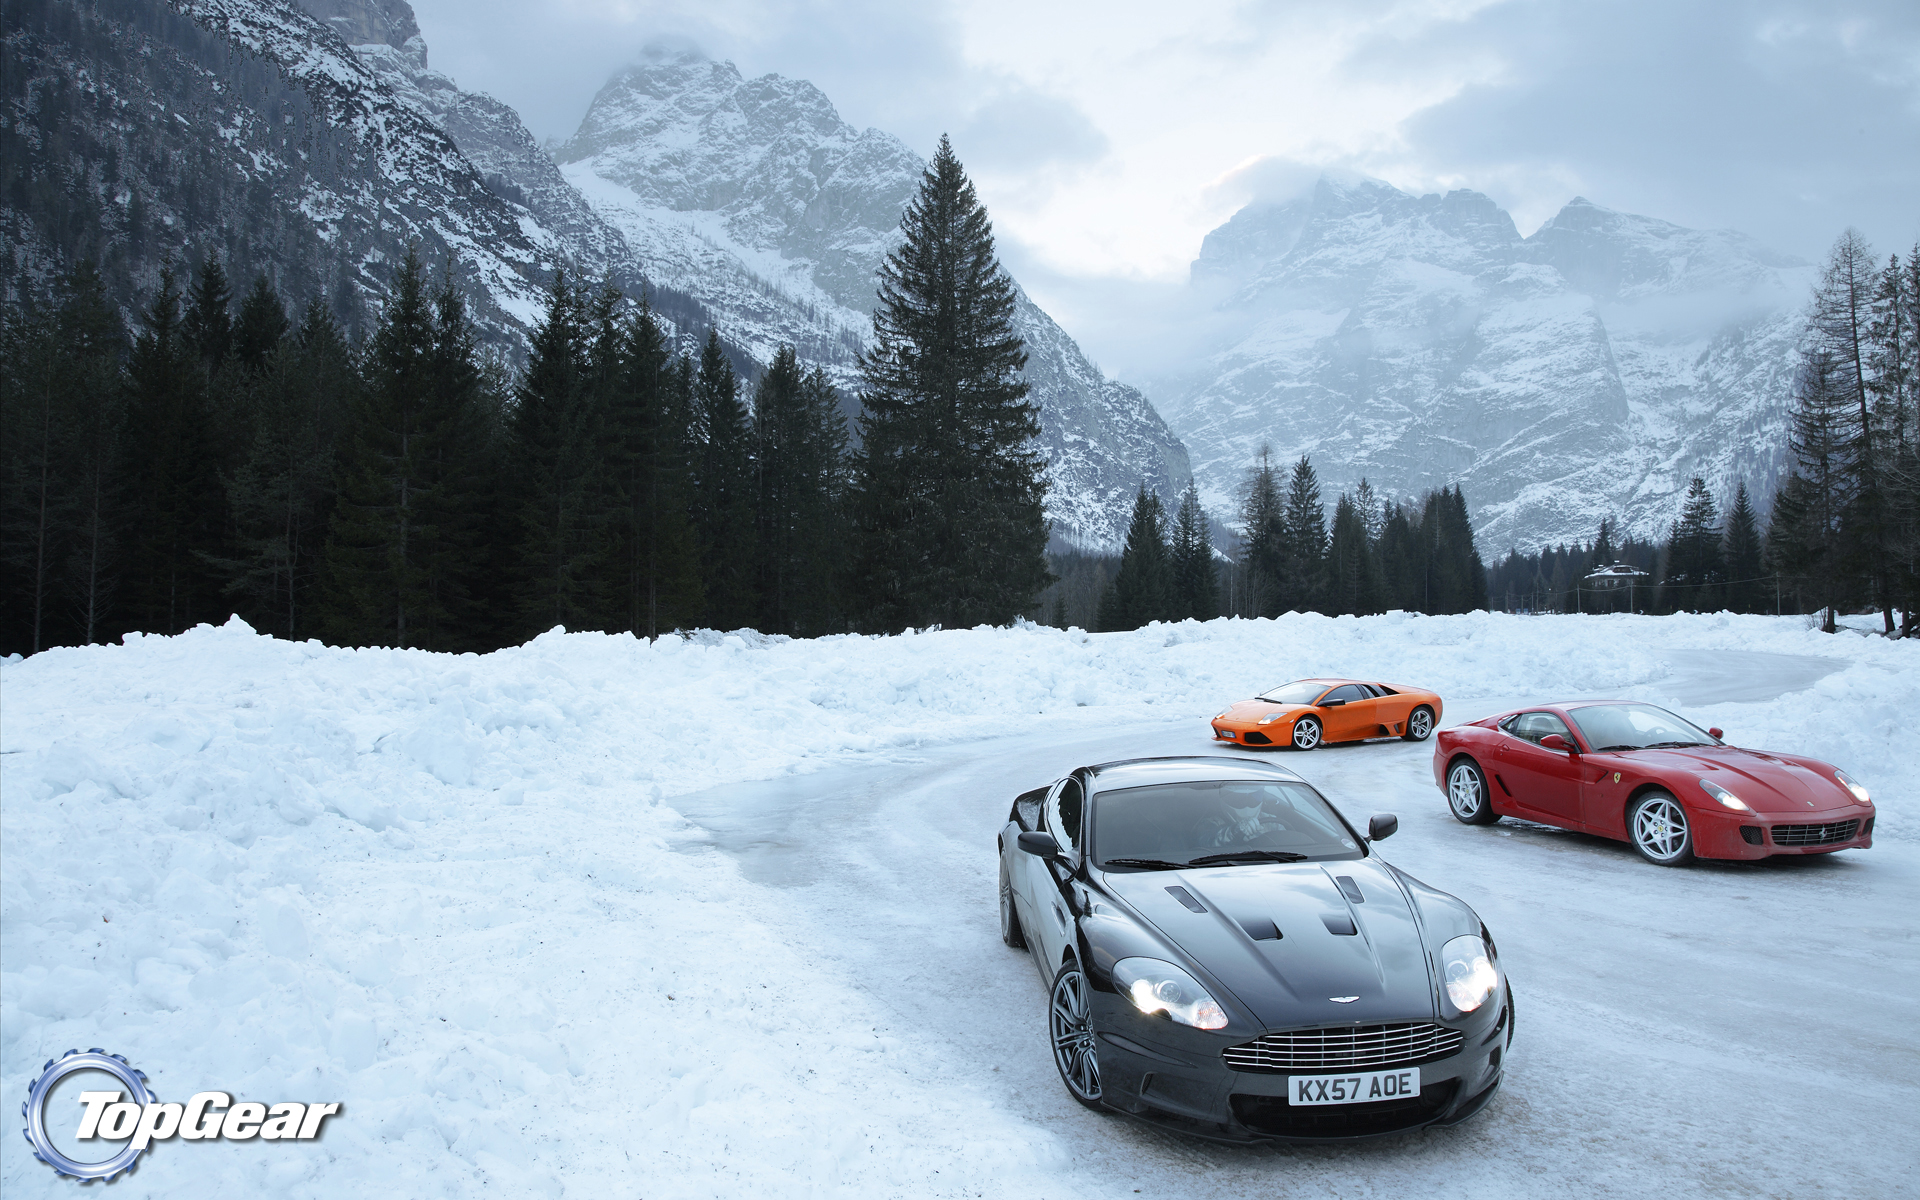 All In One Super Cars Wallpapers Top Gear S Finest Cars And Snow Photos Top Gear